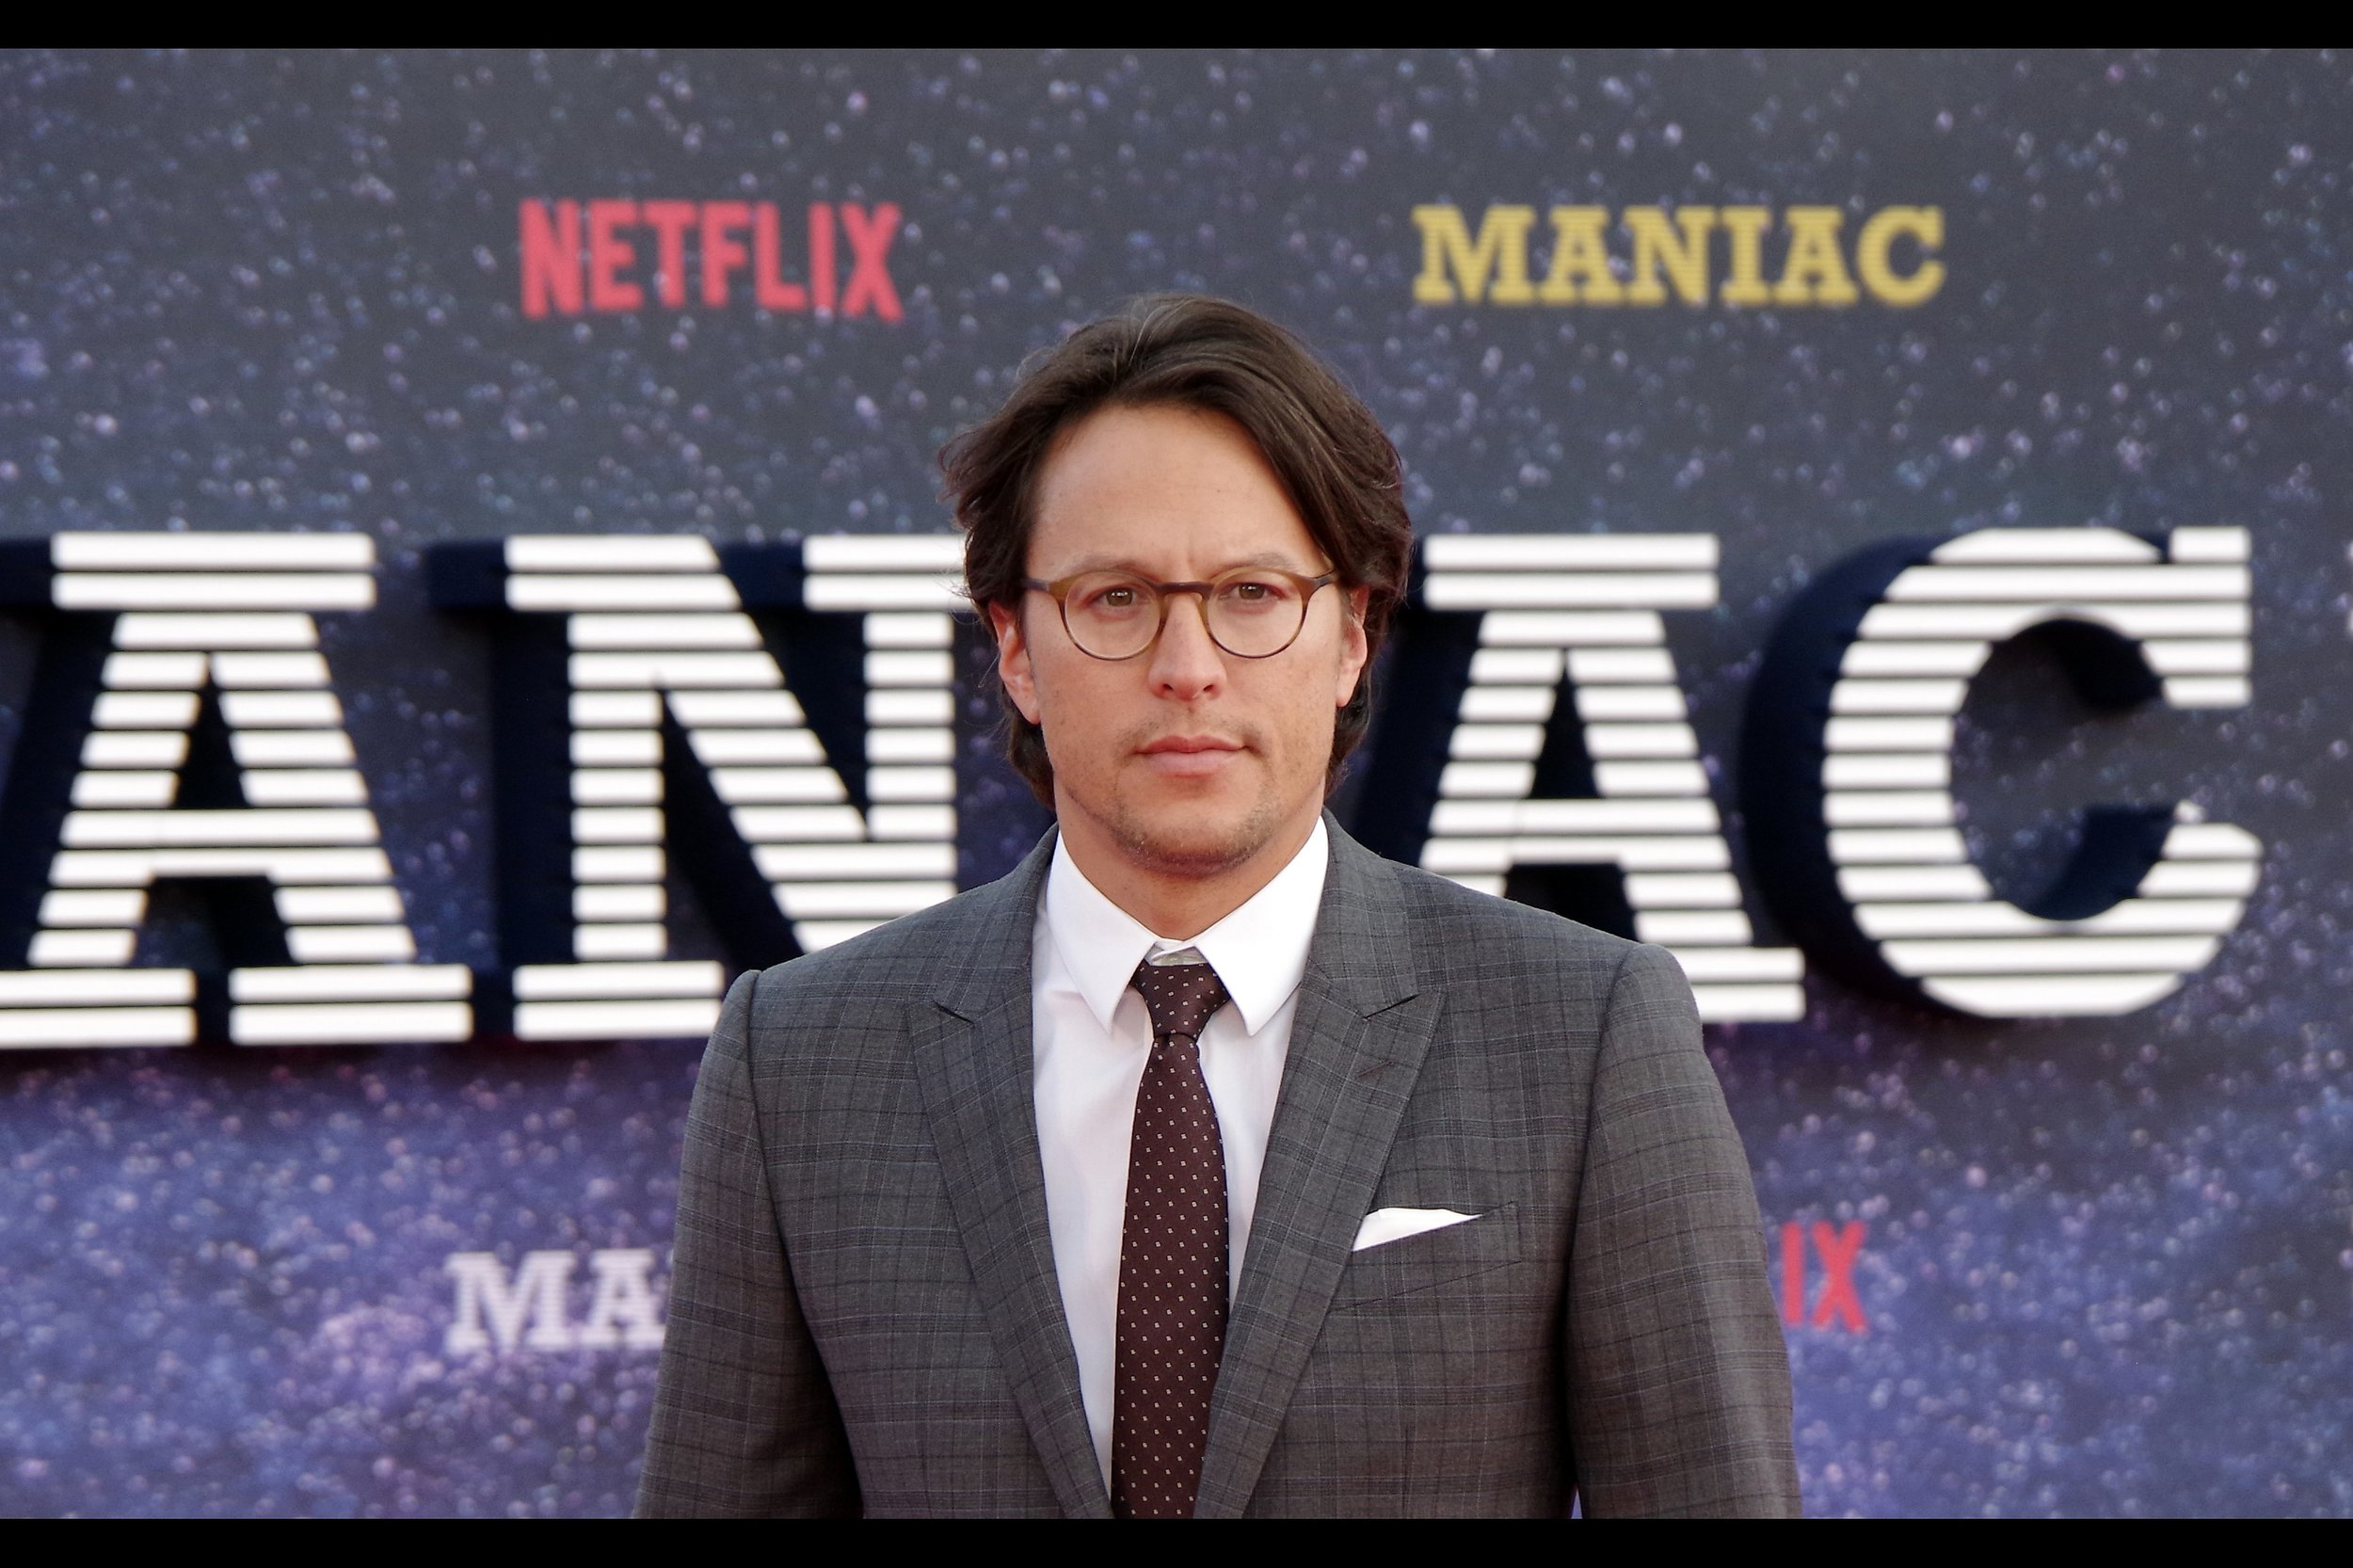 This is Cary Joji Fukunaga, who directed all ten episodes of 'Maniac', which also stars Jonah Hill. His eyes are presumably drawn to the fetching hat worn by the hairy paparazzo in front and to my right. Sadly, I myself am caught between seasons : it's too cool to wear my LA cap, and not cool enough to start bringing out my killer style beanies.